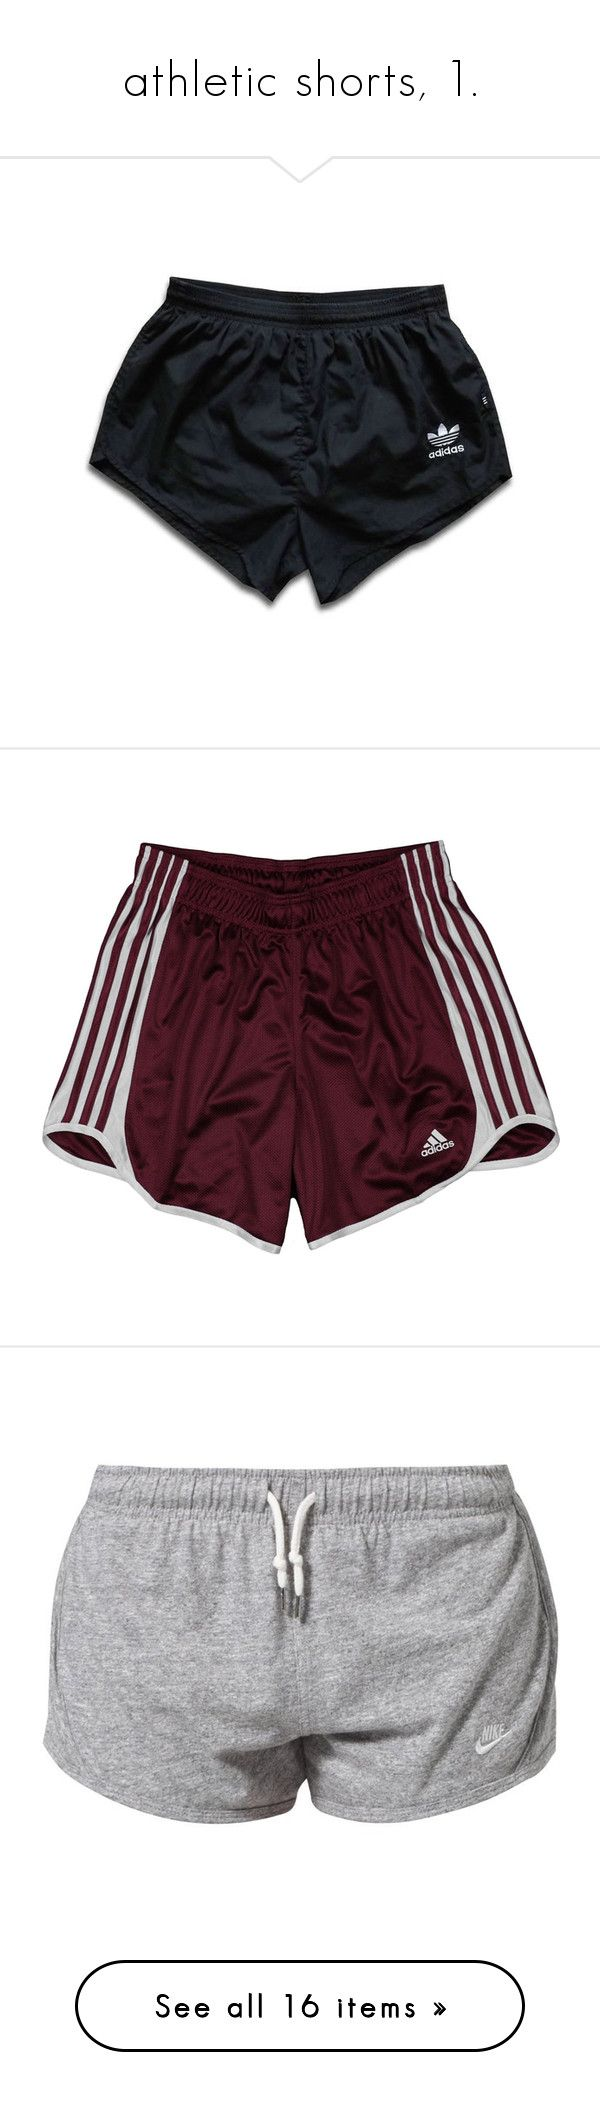 """athletic shorts, 1."" by originalimanim ❤ liked on Polyvore featuring shorts, bottoms, adidas, bottoms shorts, pants, short, activewear, activewear shorts, nike and nike activewear"